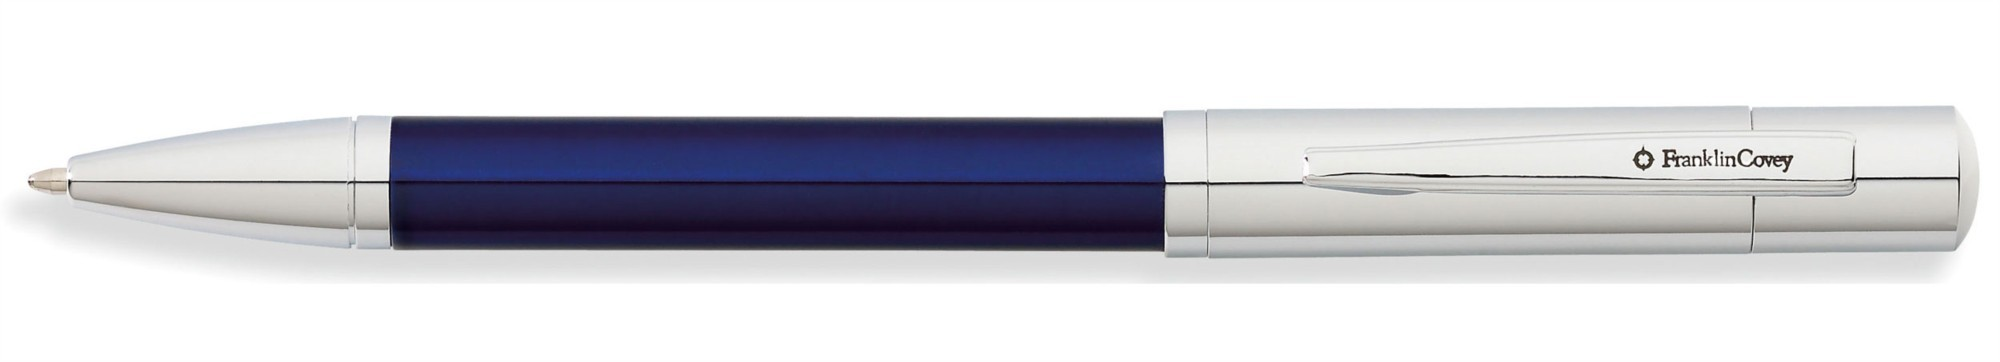 Шариковая ручка Franklin Covey Greenwich Blue Lacquer